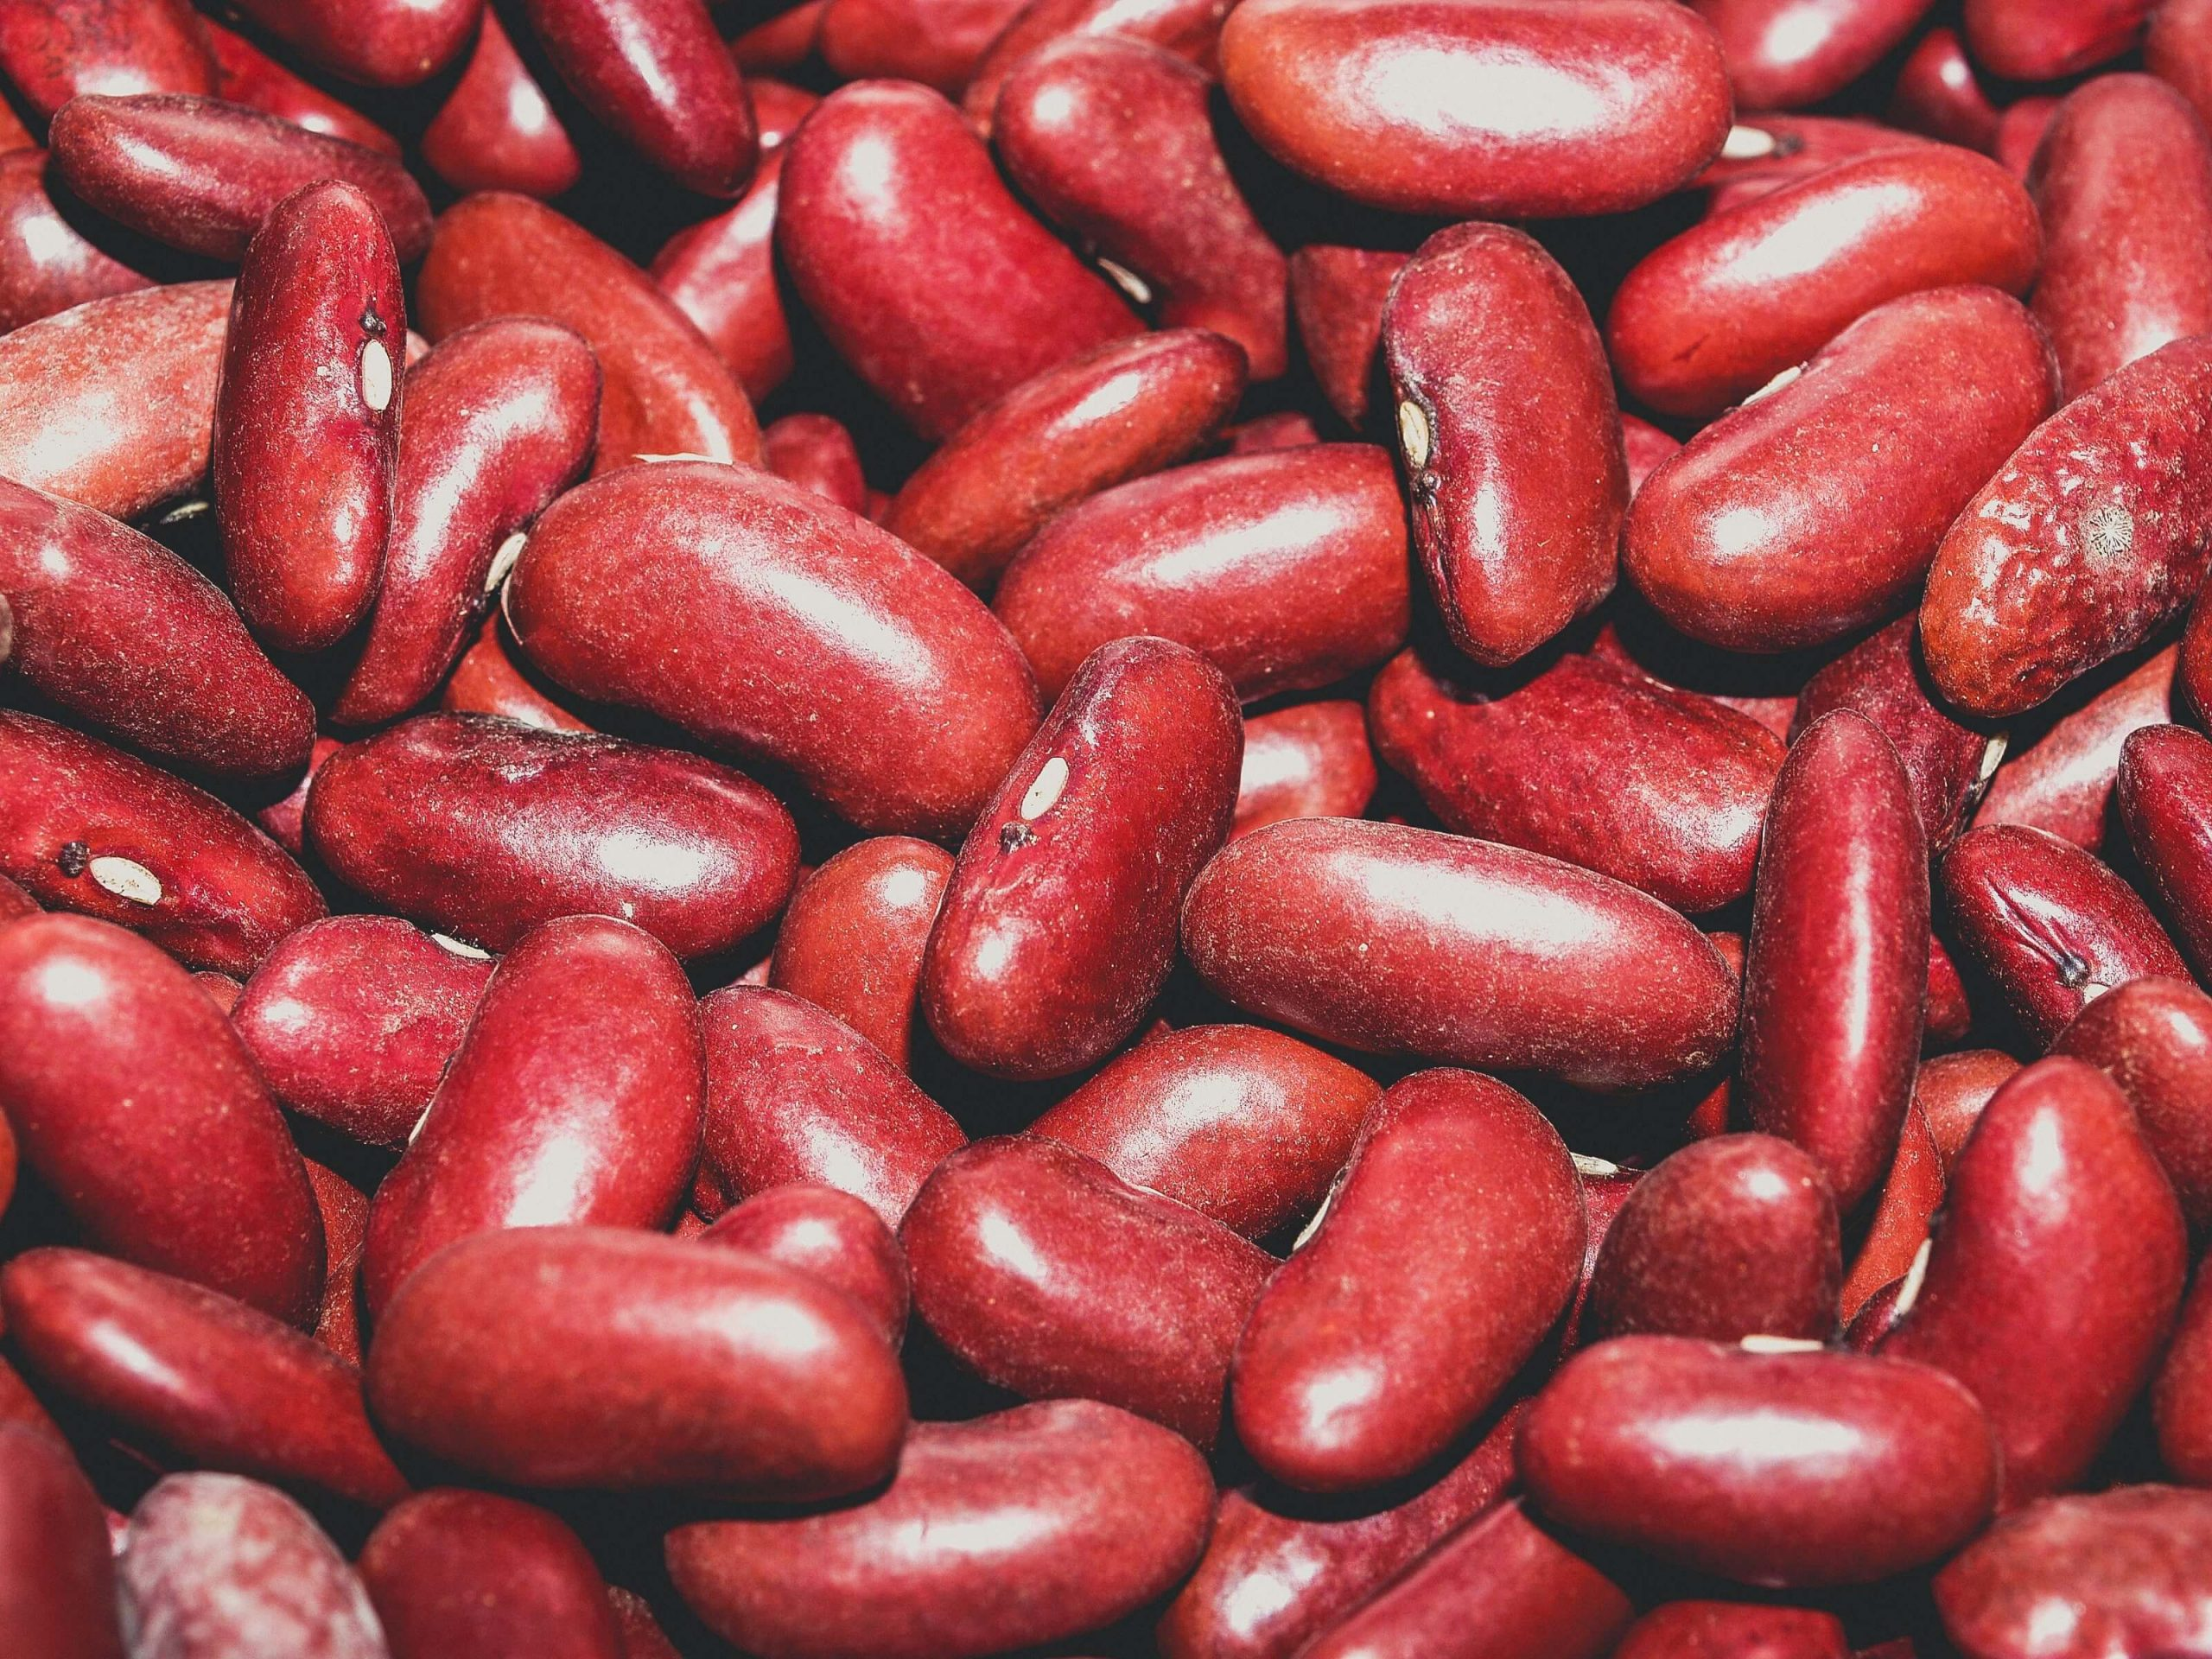 A bowl of Beans as High Protein Foods